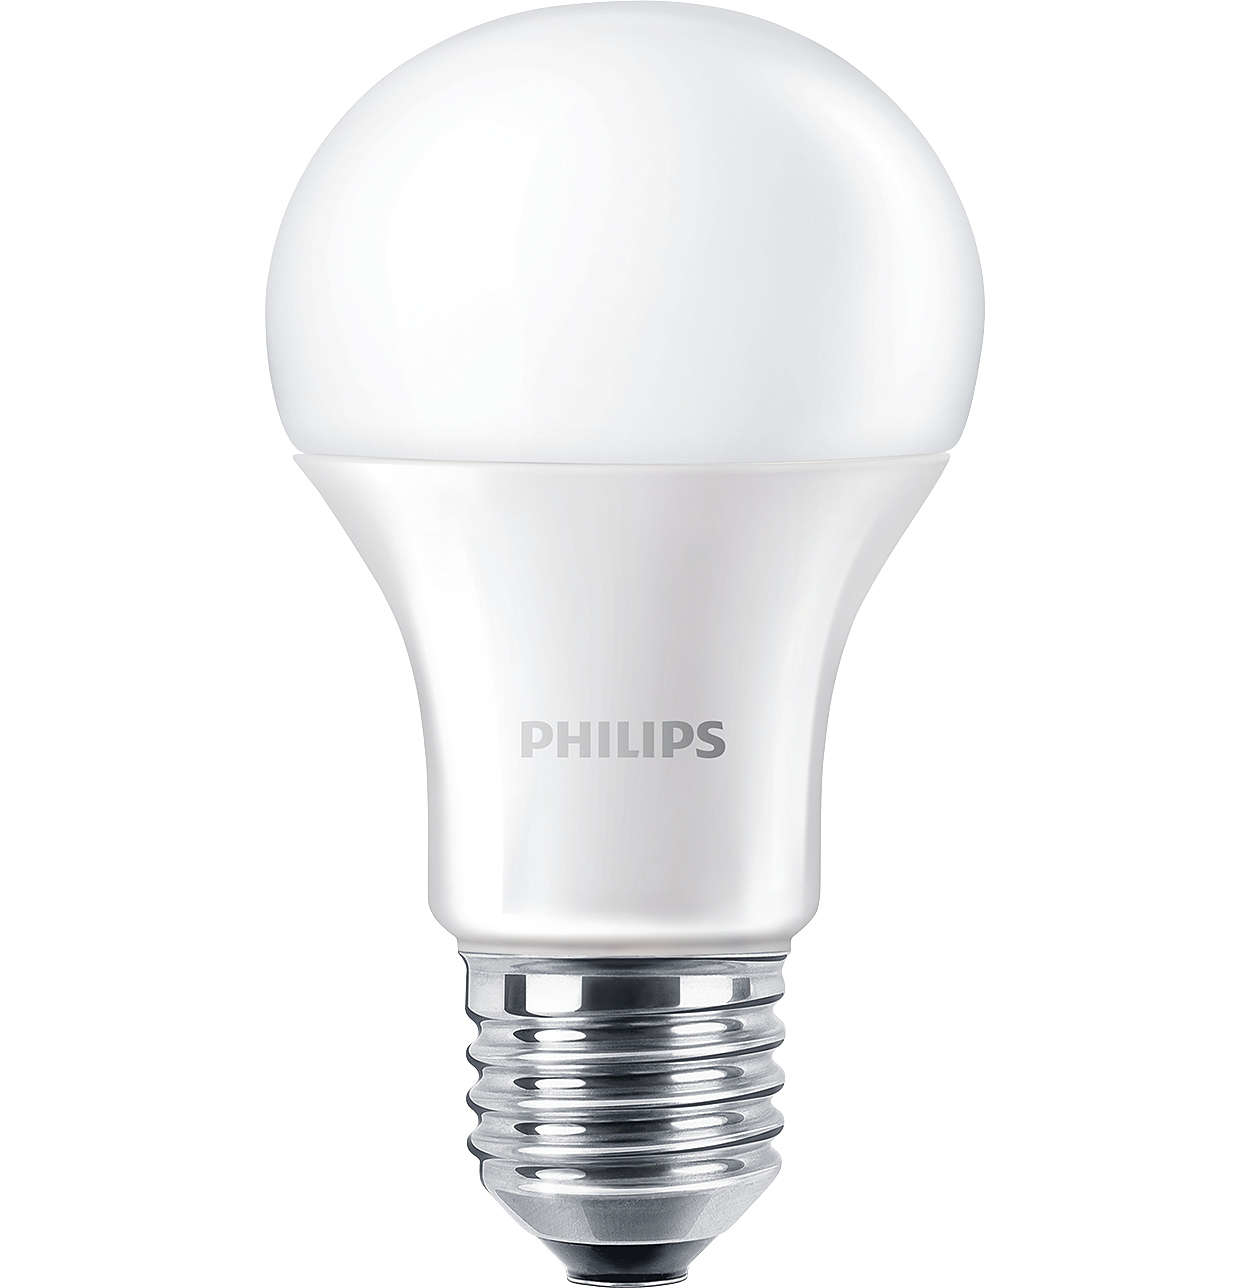 Philips - Lampadina LED - Core75830